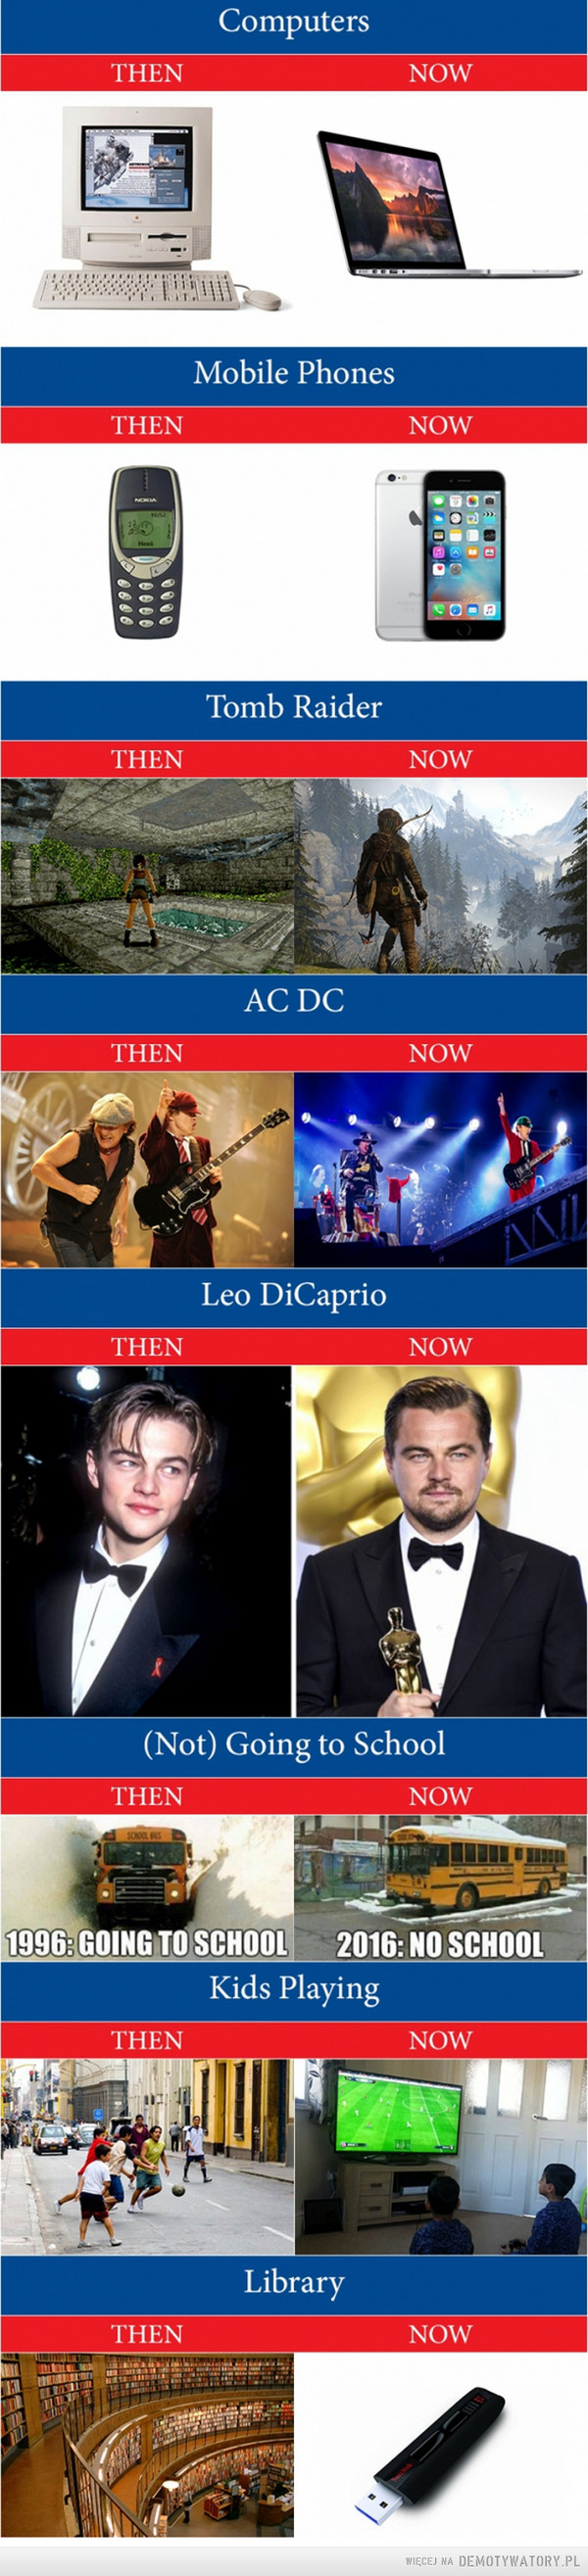 1996 vs 2016 –  THEN NOWMobile PhonesTHEN NOWTomb RaiderTHEN NOWAC DCTHEN NOWLeo DiCaprioTHEN NOW(Not) Going to SchoolTHEN NOWKids PlayingTHEN NOWLibraryTHEN NOW